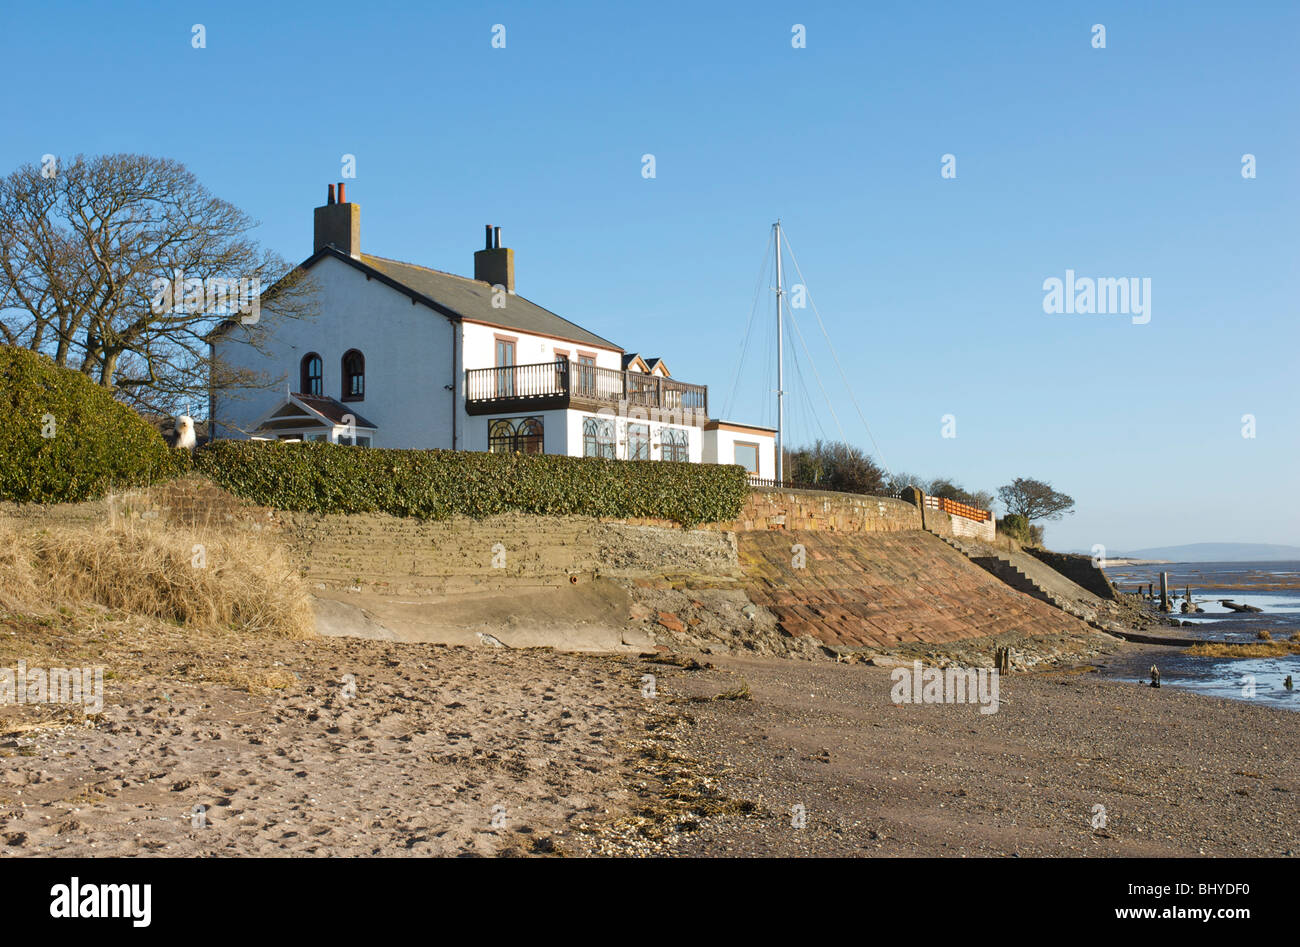 House with sea defence wall at Rampside, near Barrow-in-Furness, Cumbria, England UK - Stock Image